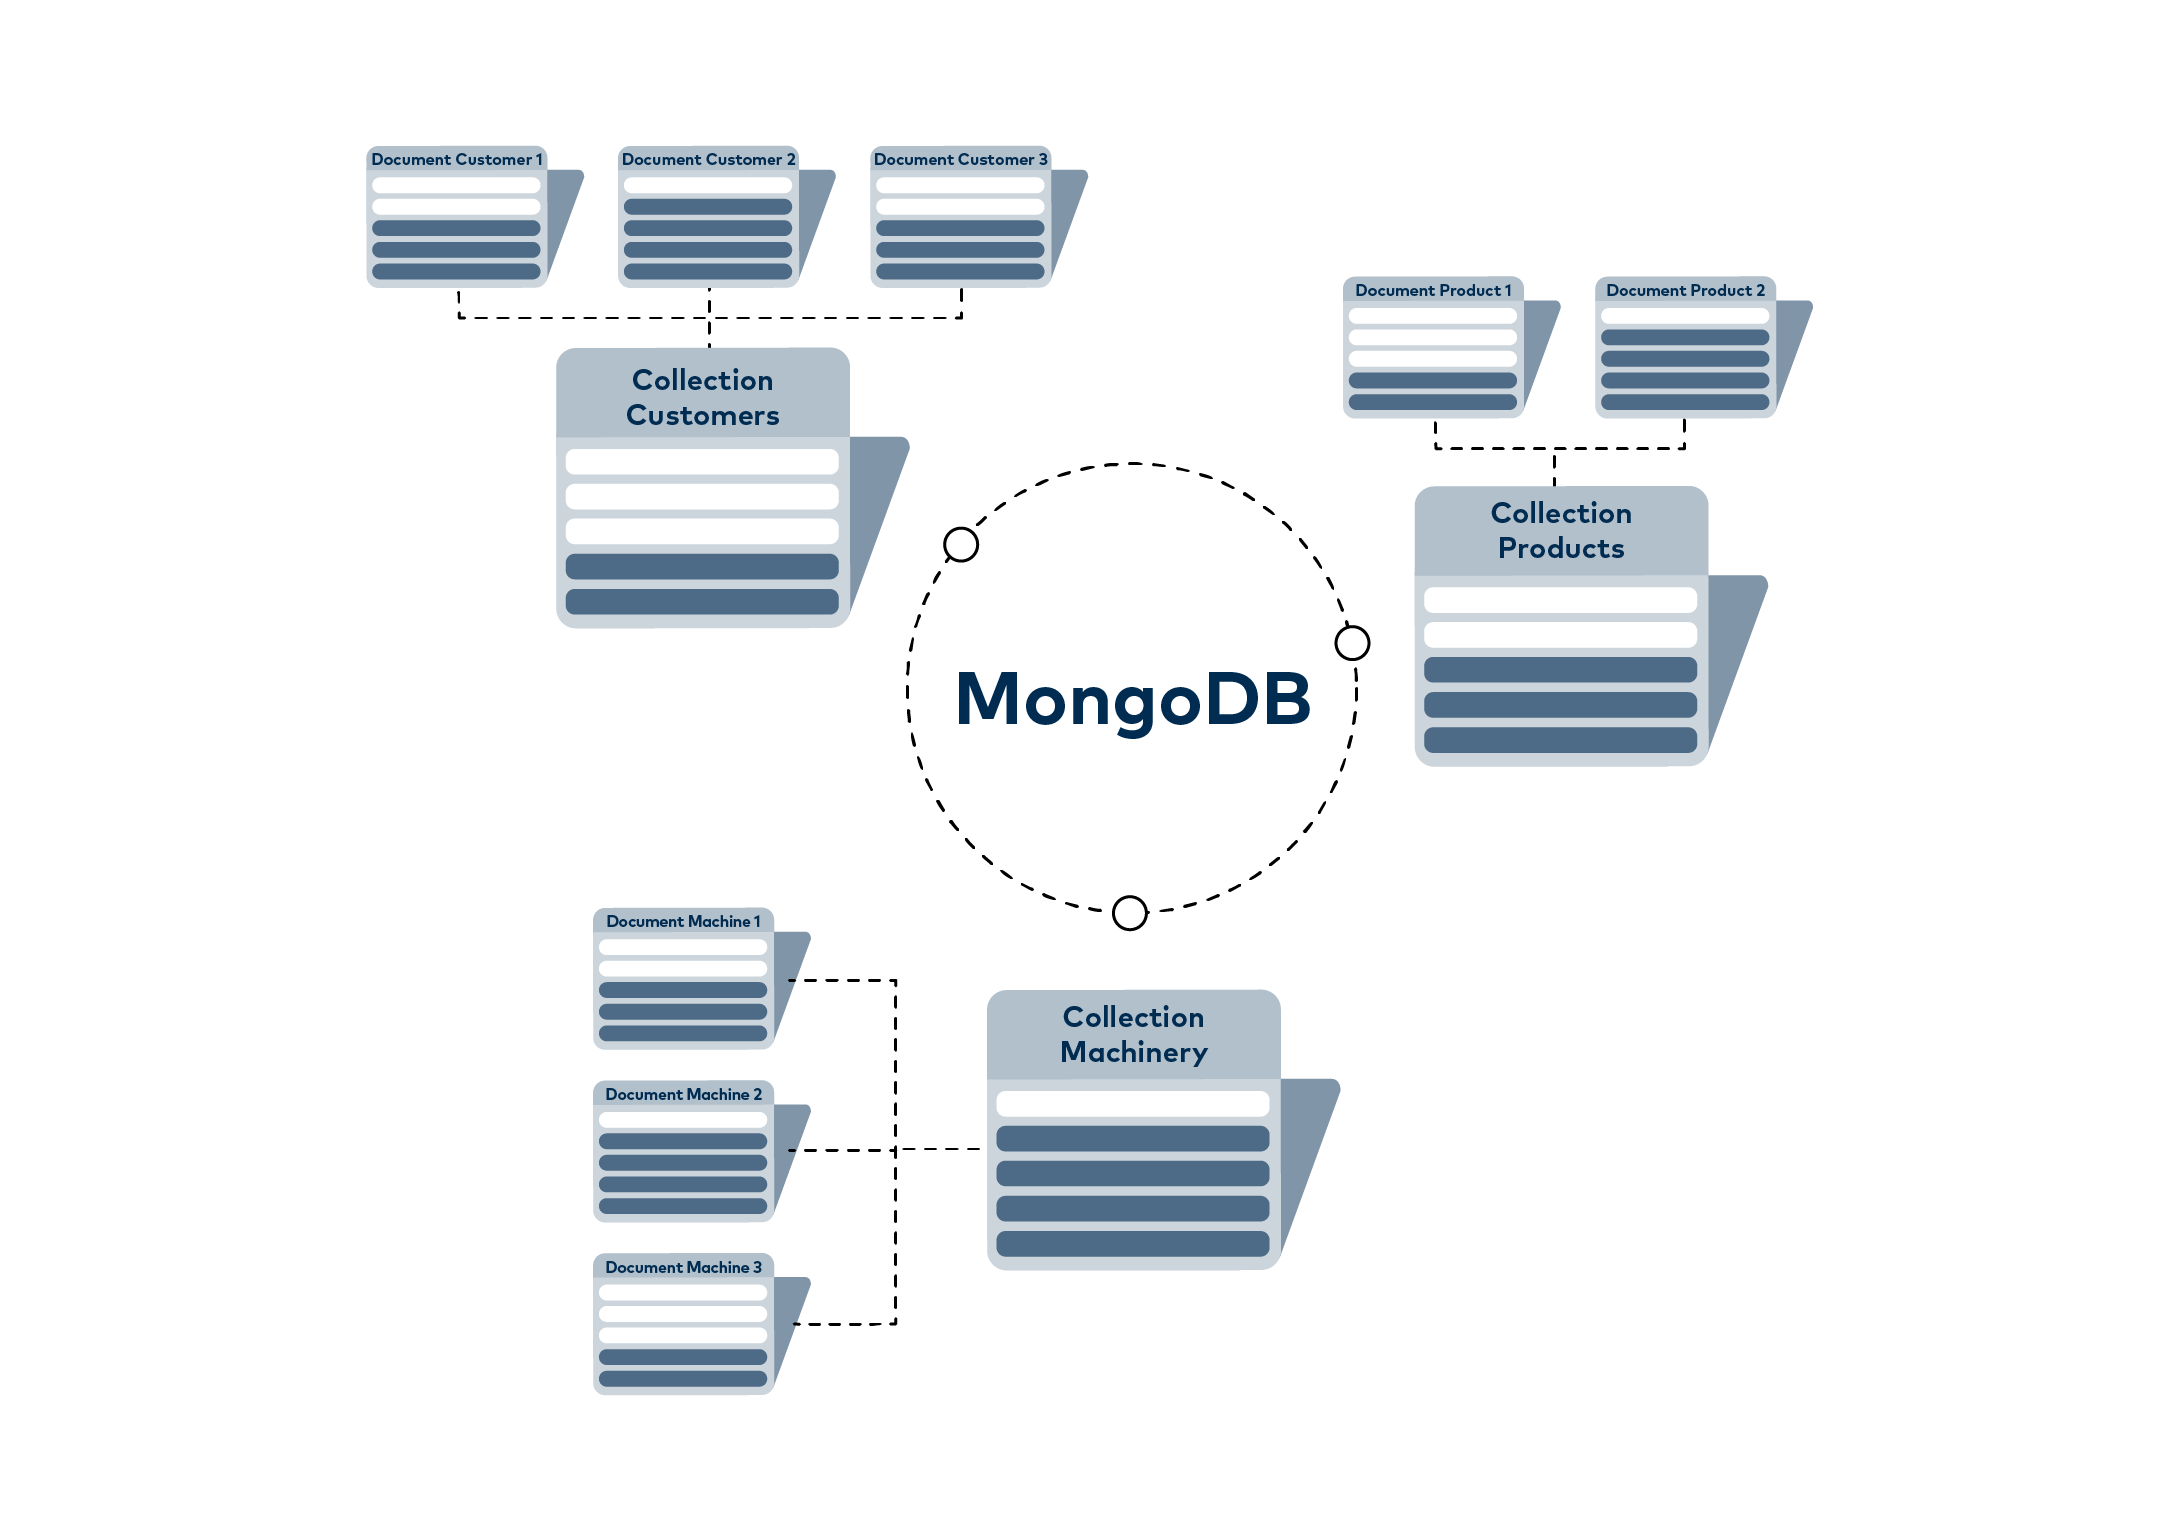 MongoDB combines several documents in collections